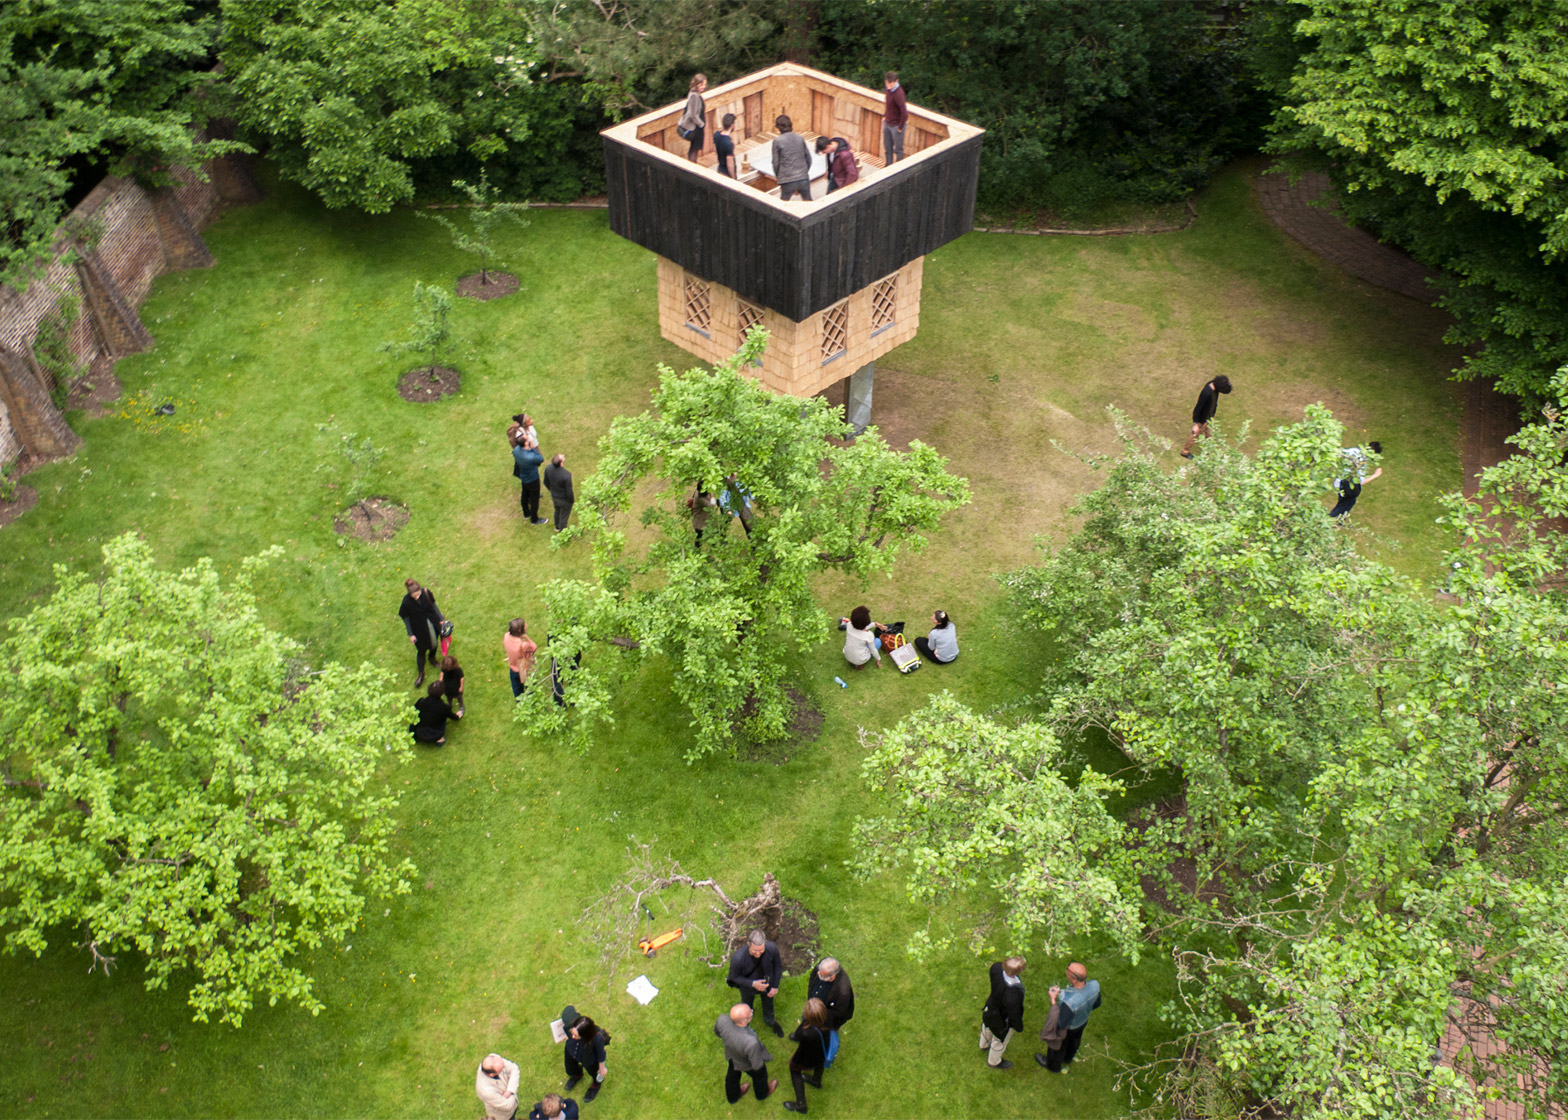 Seminar House Pavilion by Kingston University students and Terunobu Fujimori